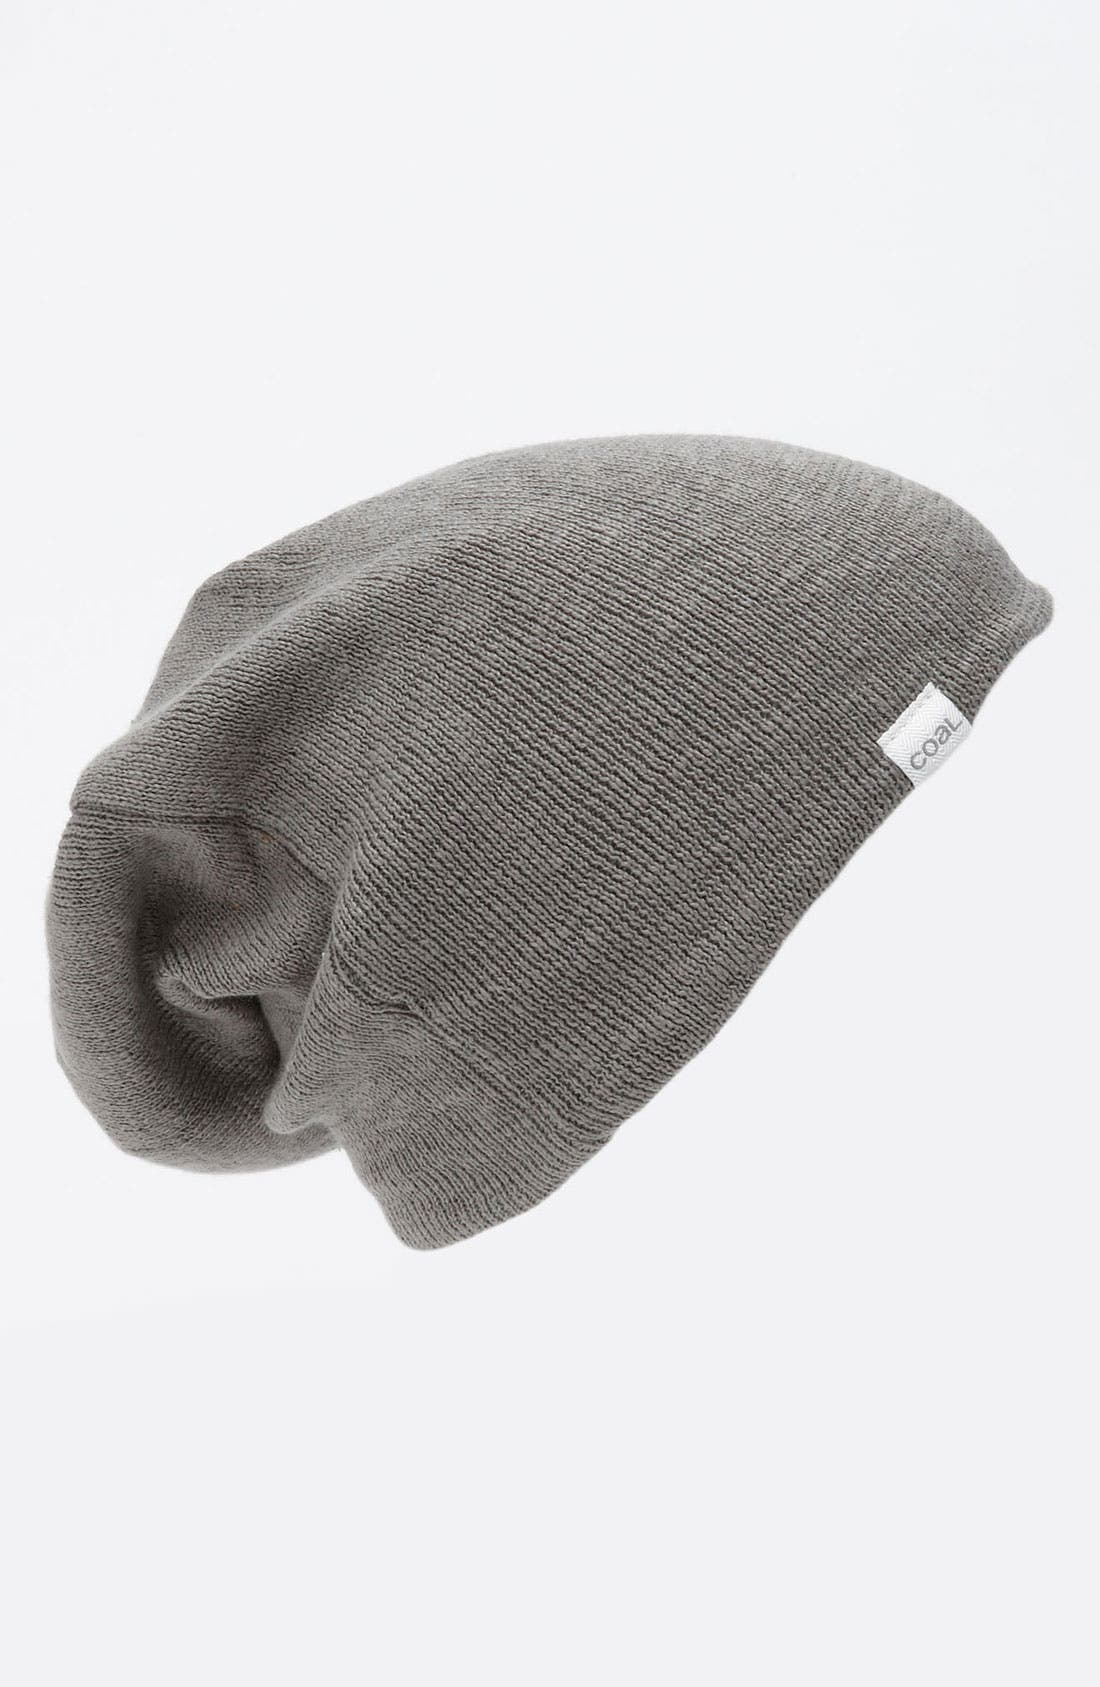 Alternate Image 1 Selected - Coal 'The Fields' Knit Cap